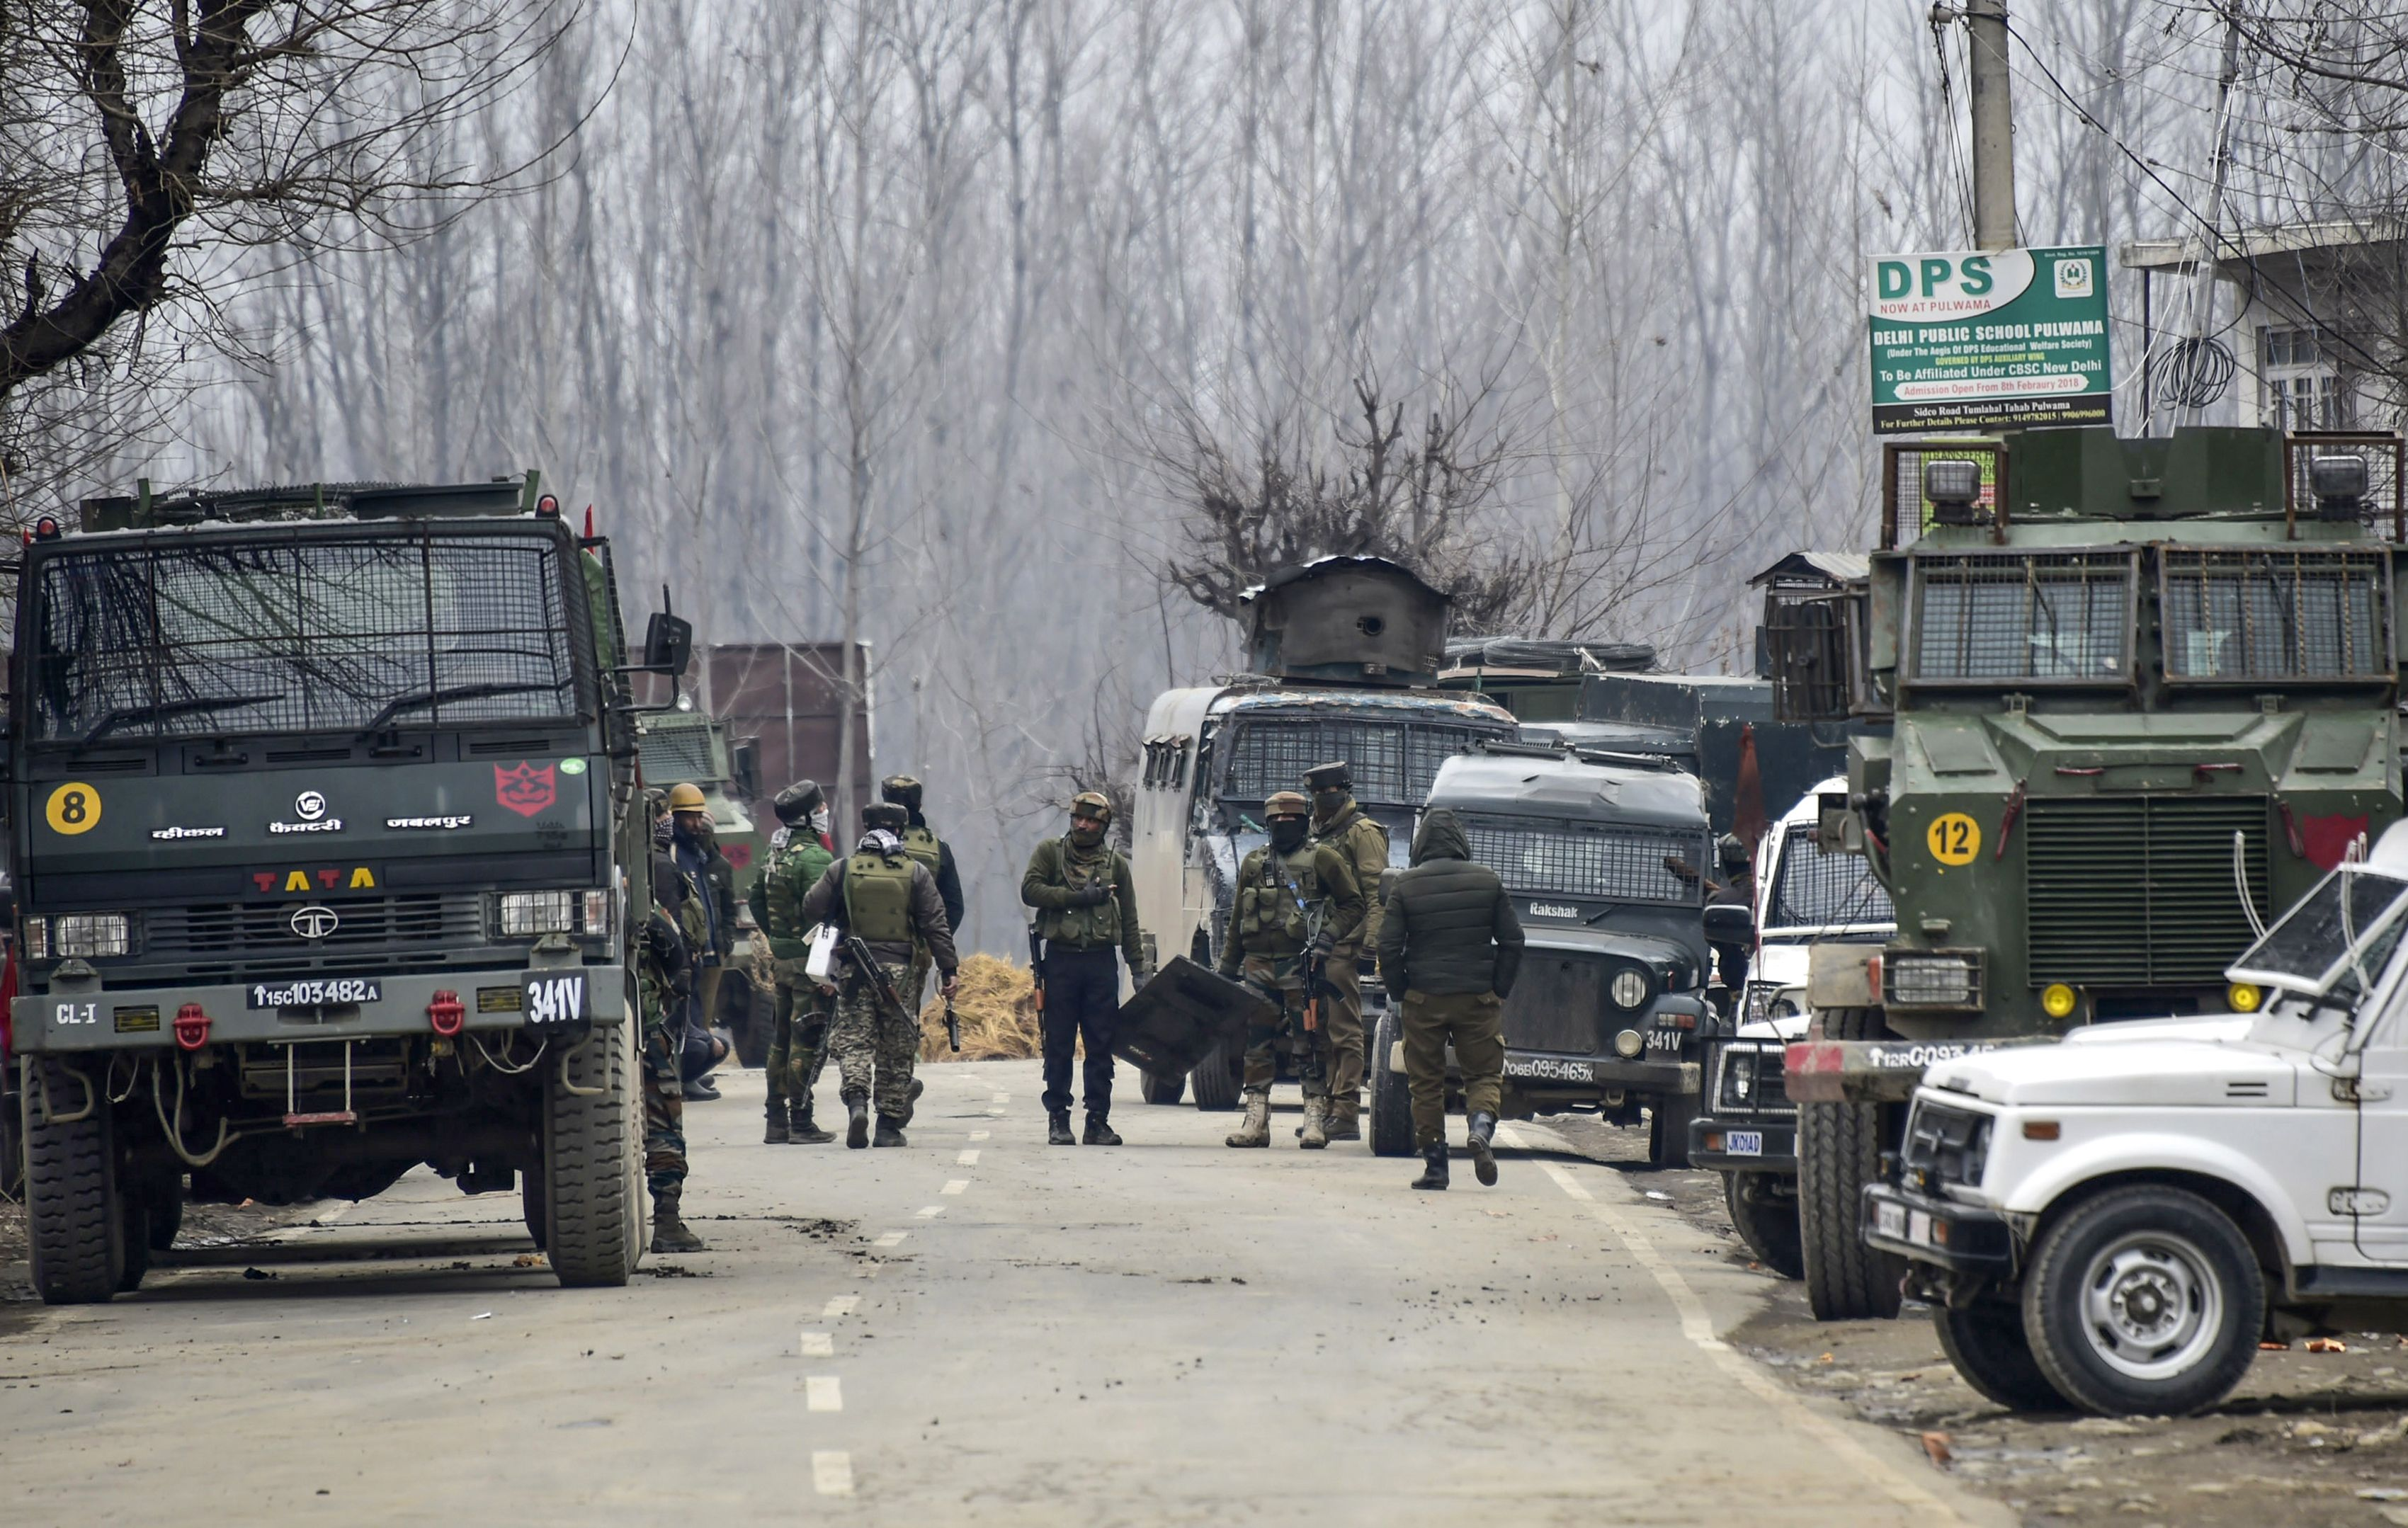 Indian security forces personnel are on manoeuvres as a gunfight with militants has happened that killed 4 soldiers, in South Kashmir's Pulwama district, some 10 km away from the spot of recent suicide bombing, on February 18, 2019.  (Photo: STR/AFP/Getty Images)